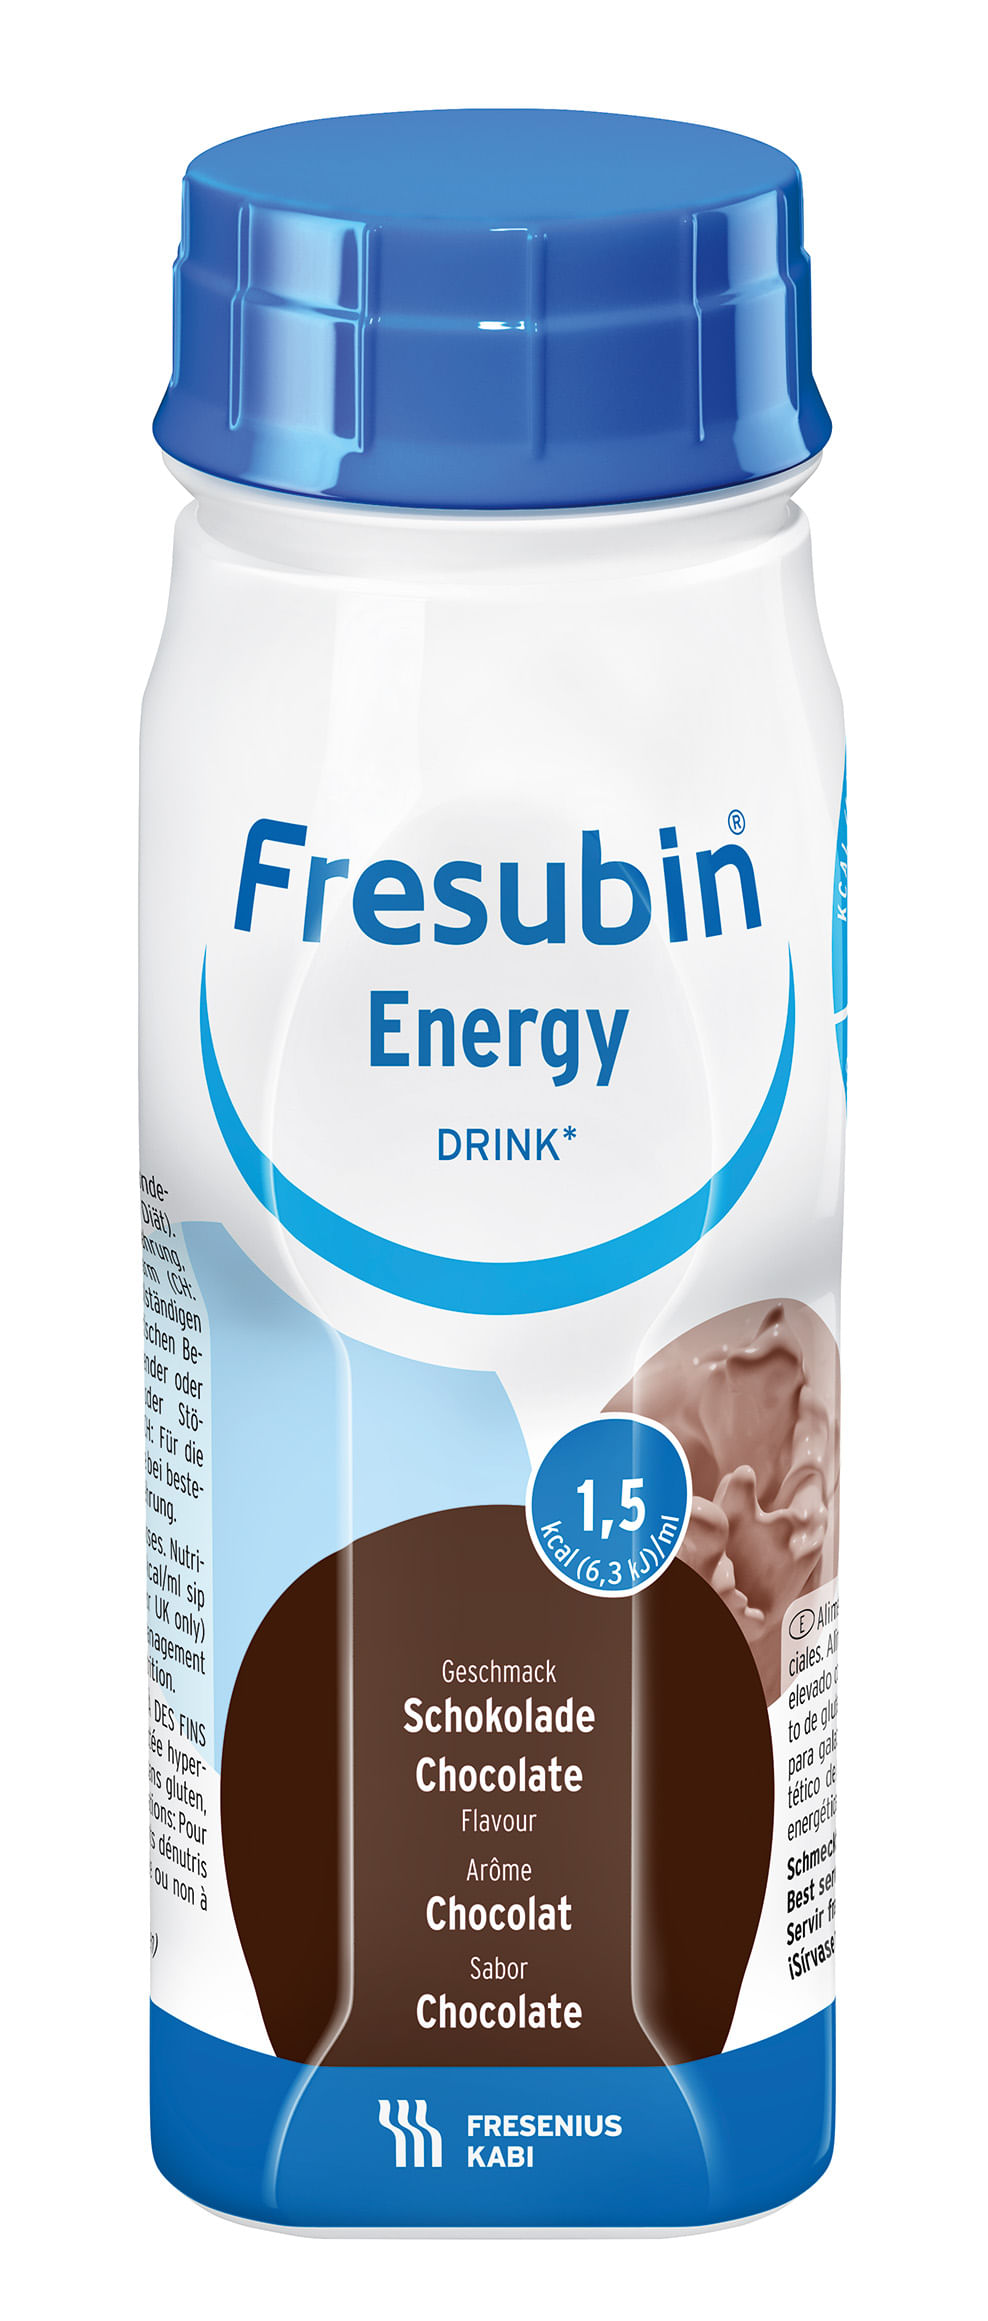 Fresubin_Energy_Chocolate_EBo_Frontal